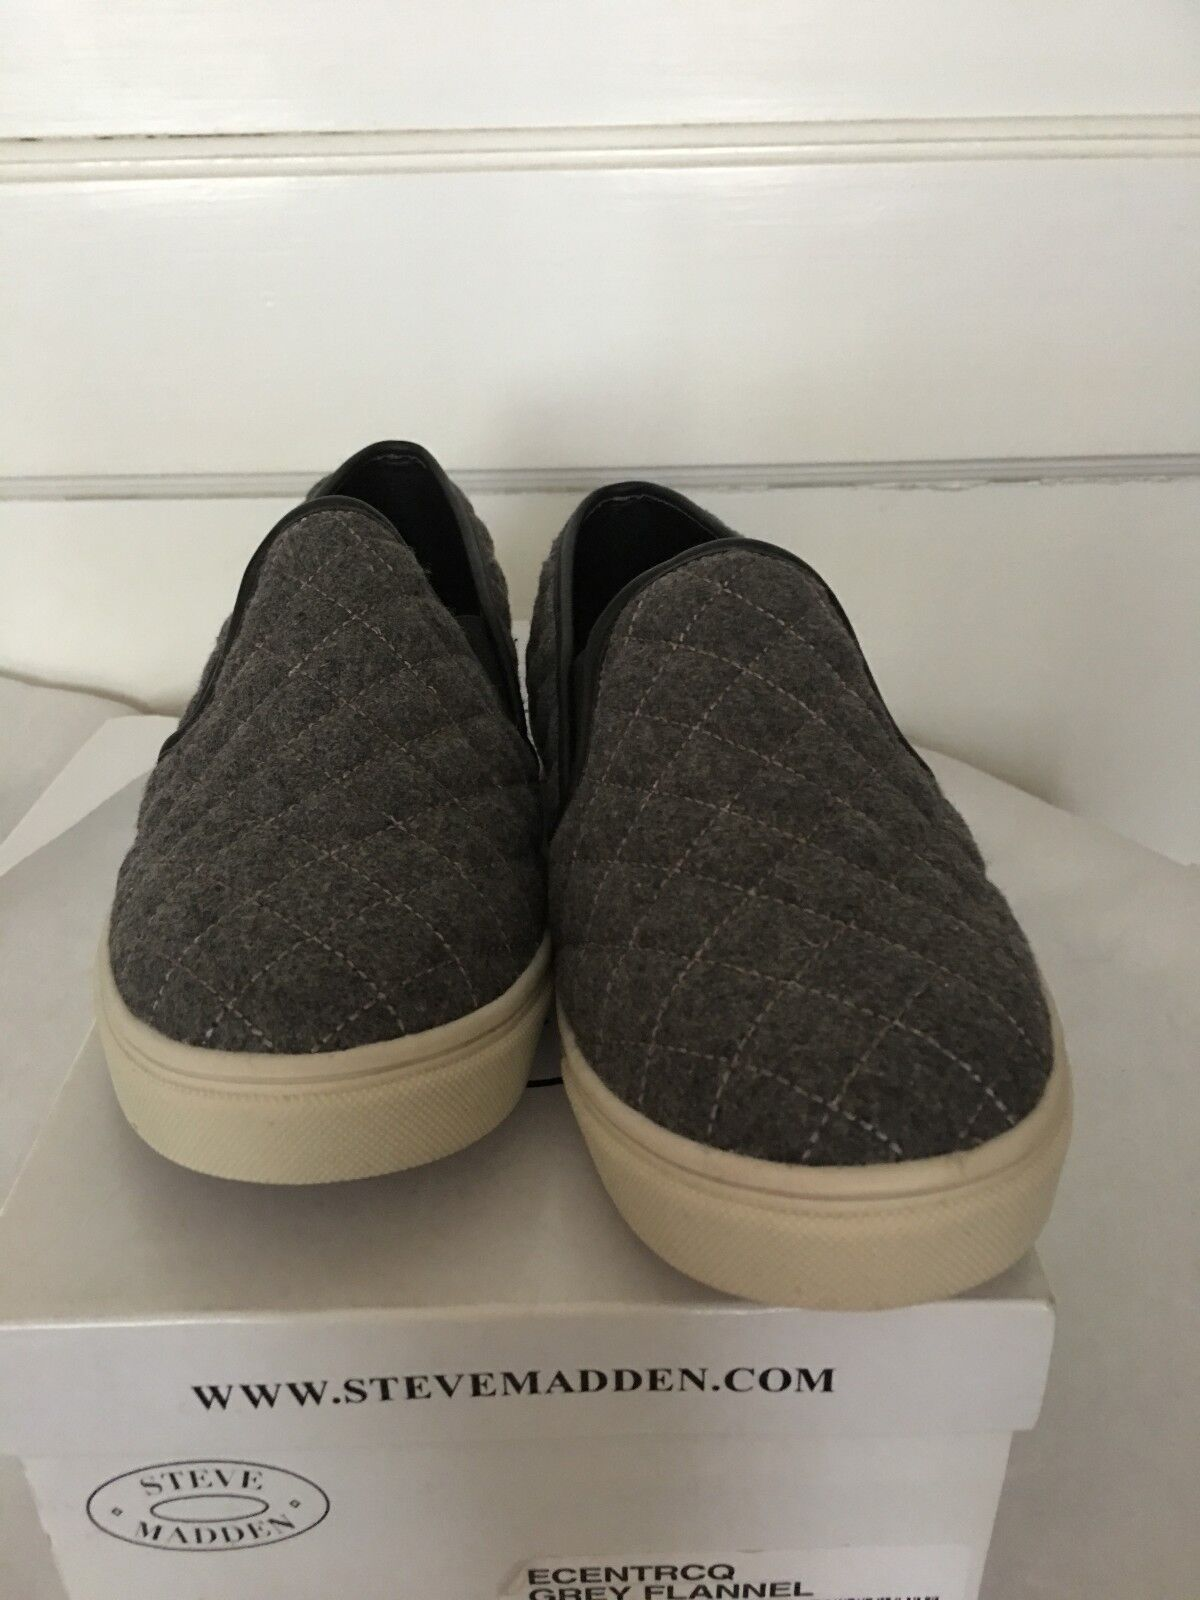 STEVE MADDEN ECENTRCQ GREY FLANNEL QUILTED SNEAKERS SZ 8 M NEU WITH BOX